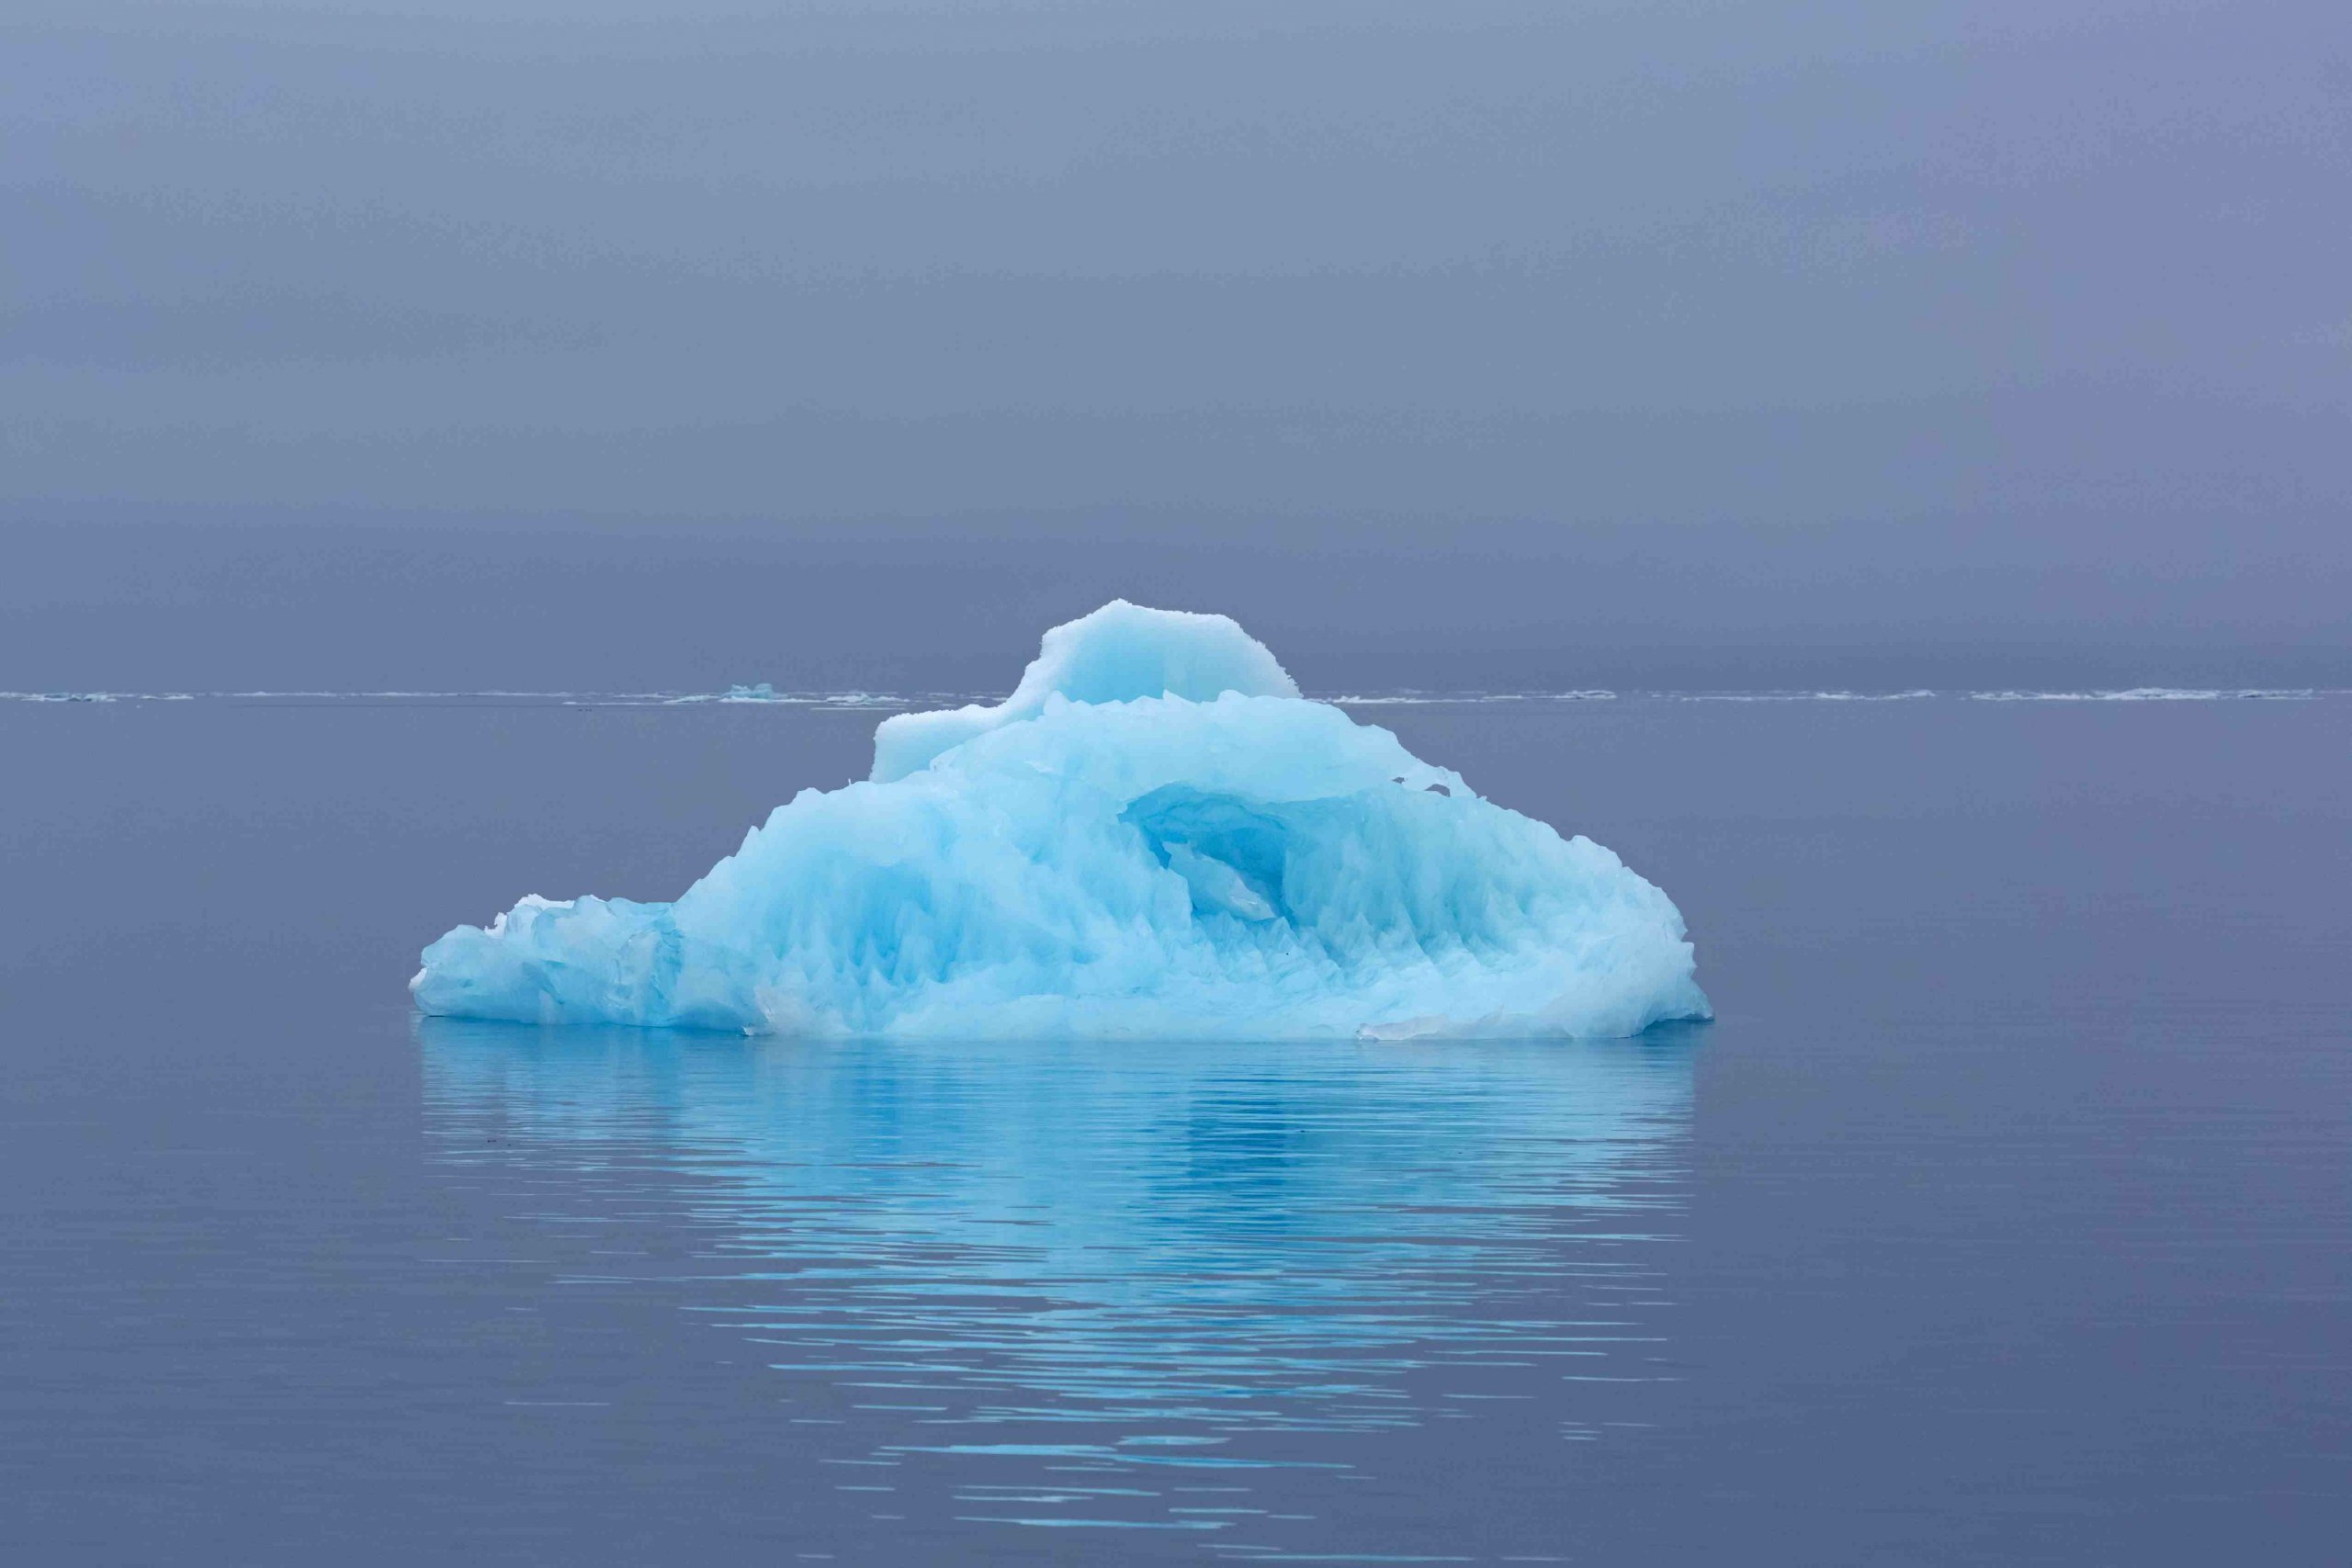 The Arctic hasn't been this warm for 3 million years – and that foreshadows big changes for the rest of the planet